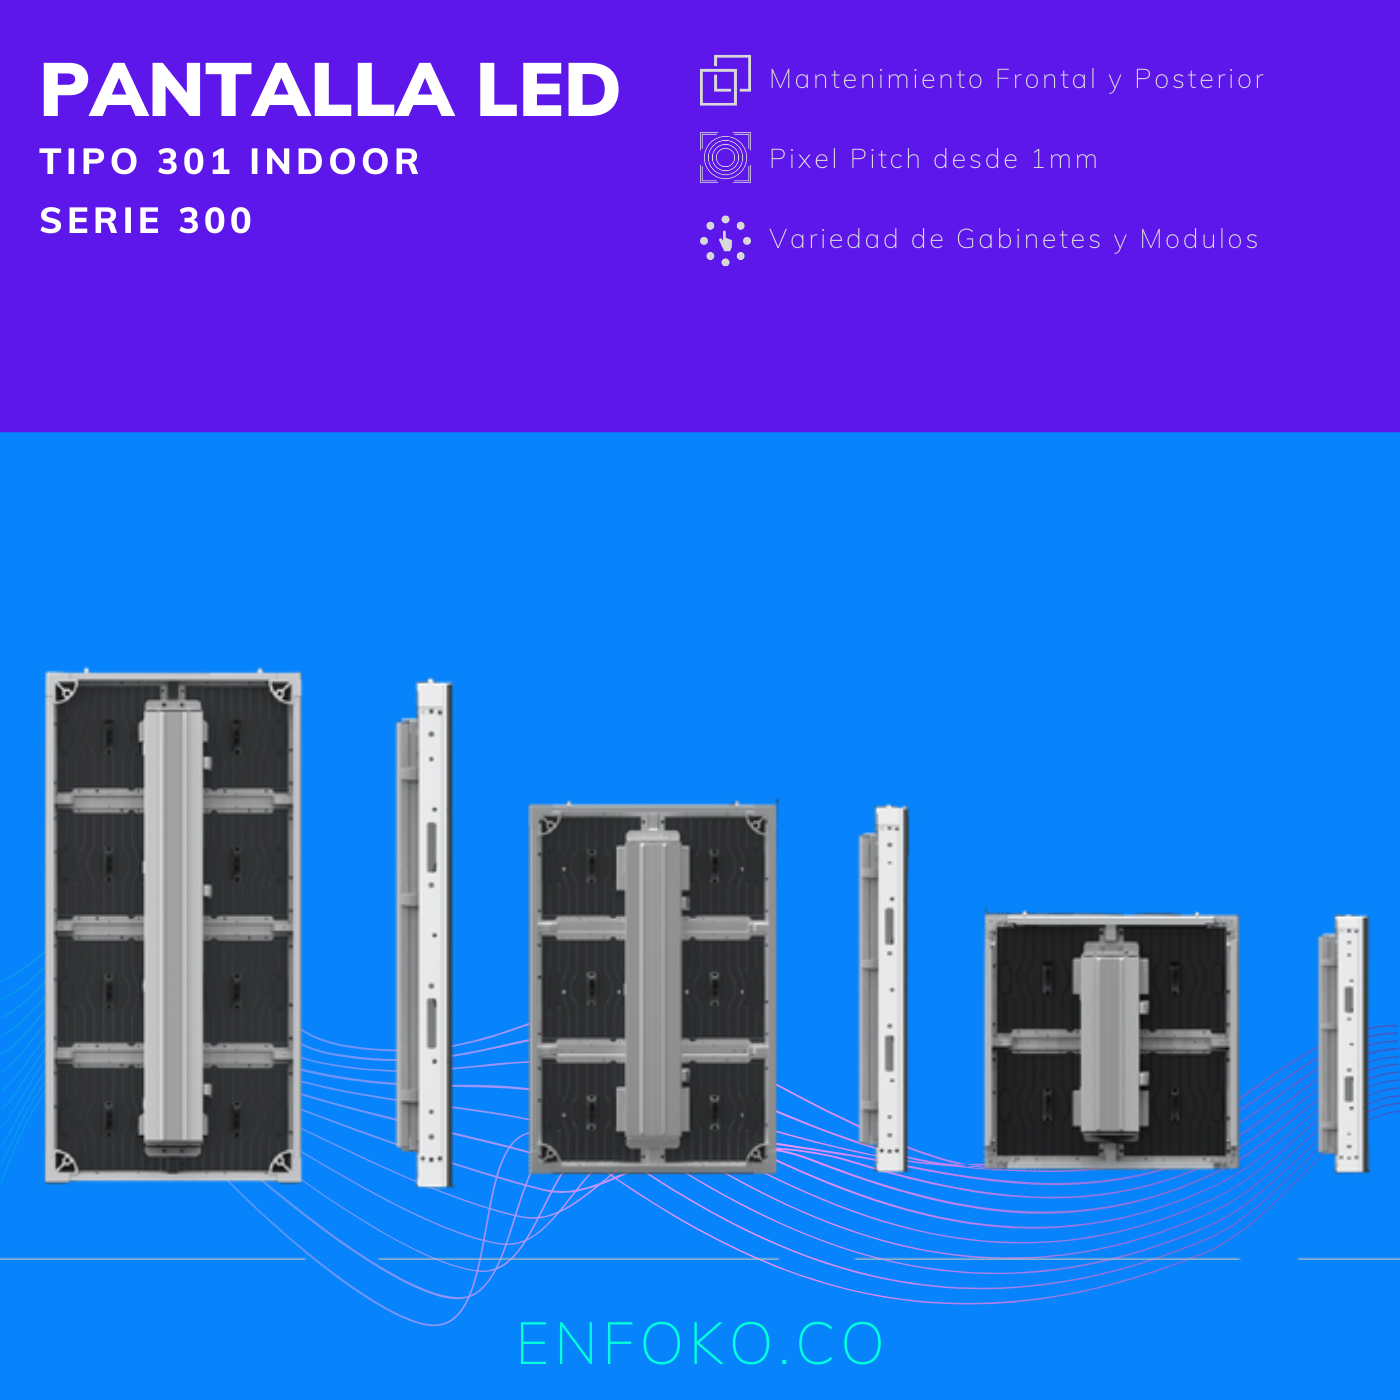 Tipo 301 - Pantalla LED INDOOR / Interior